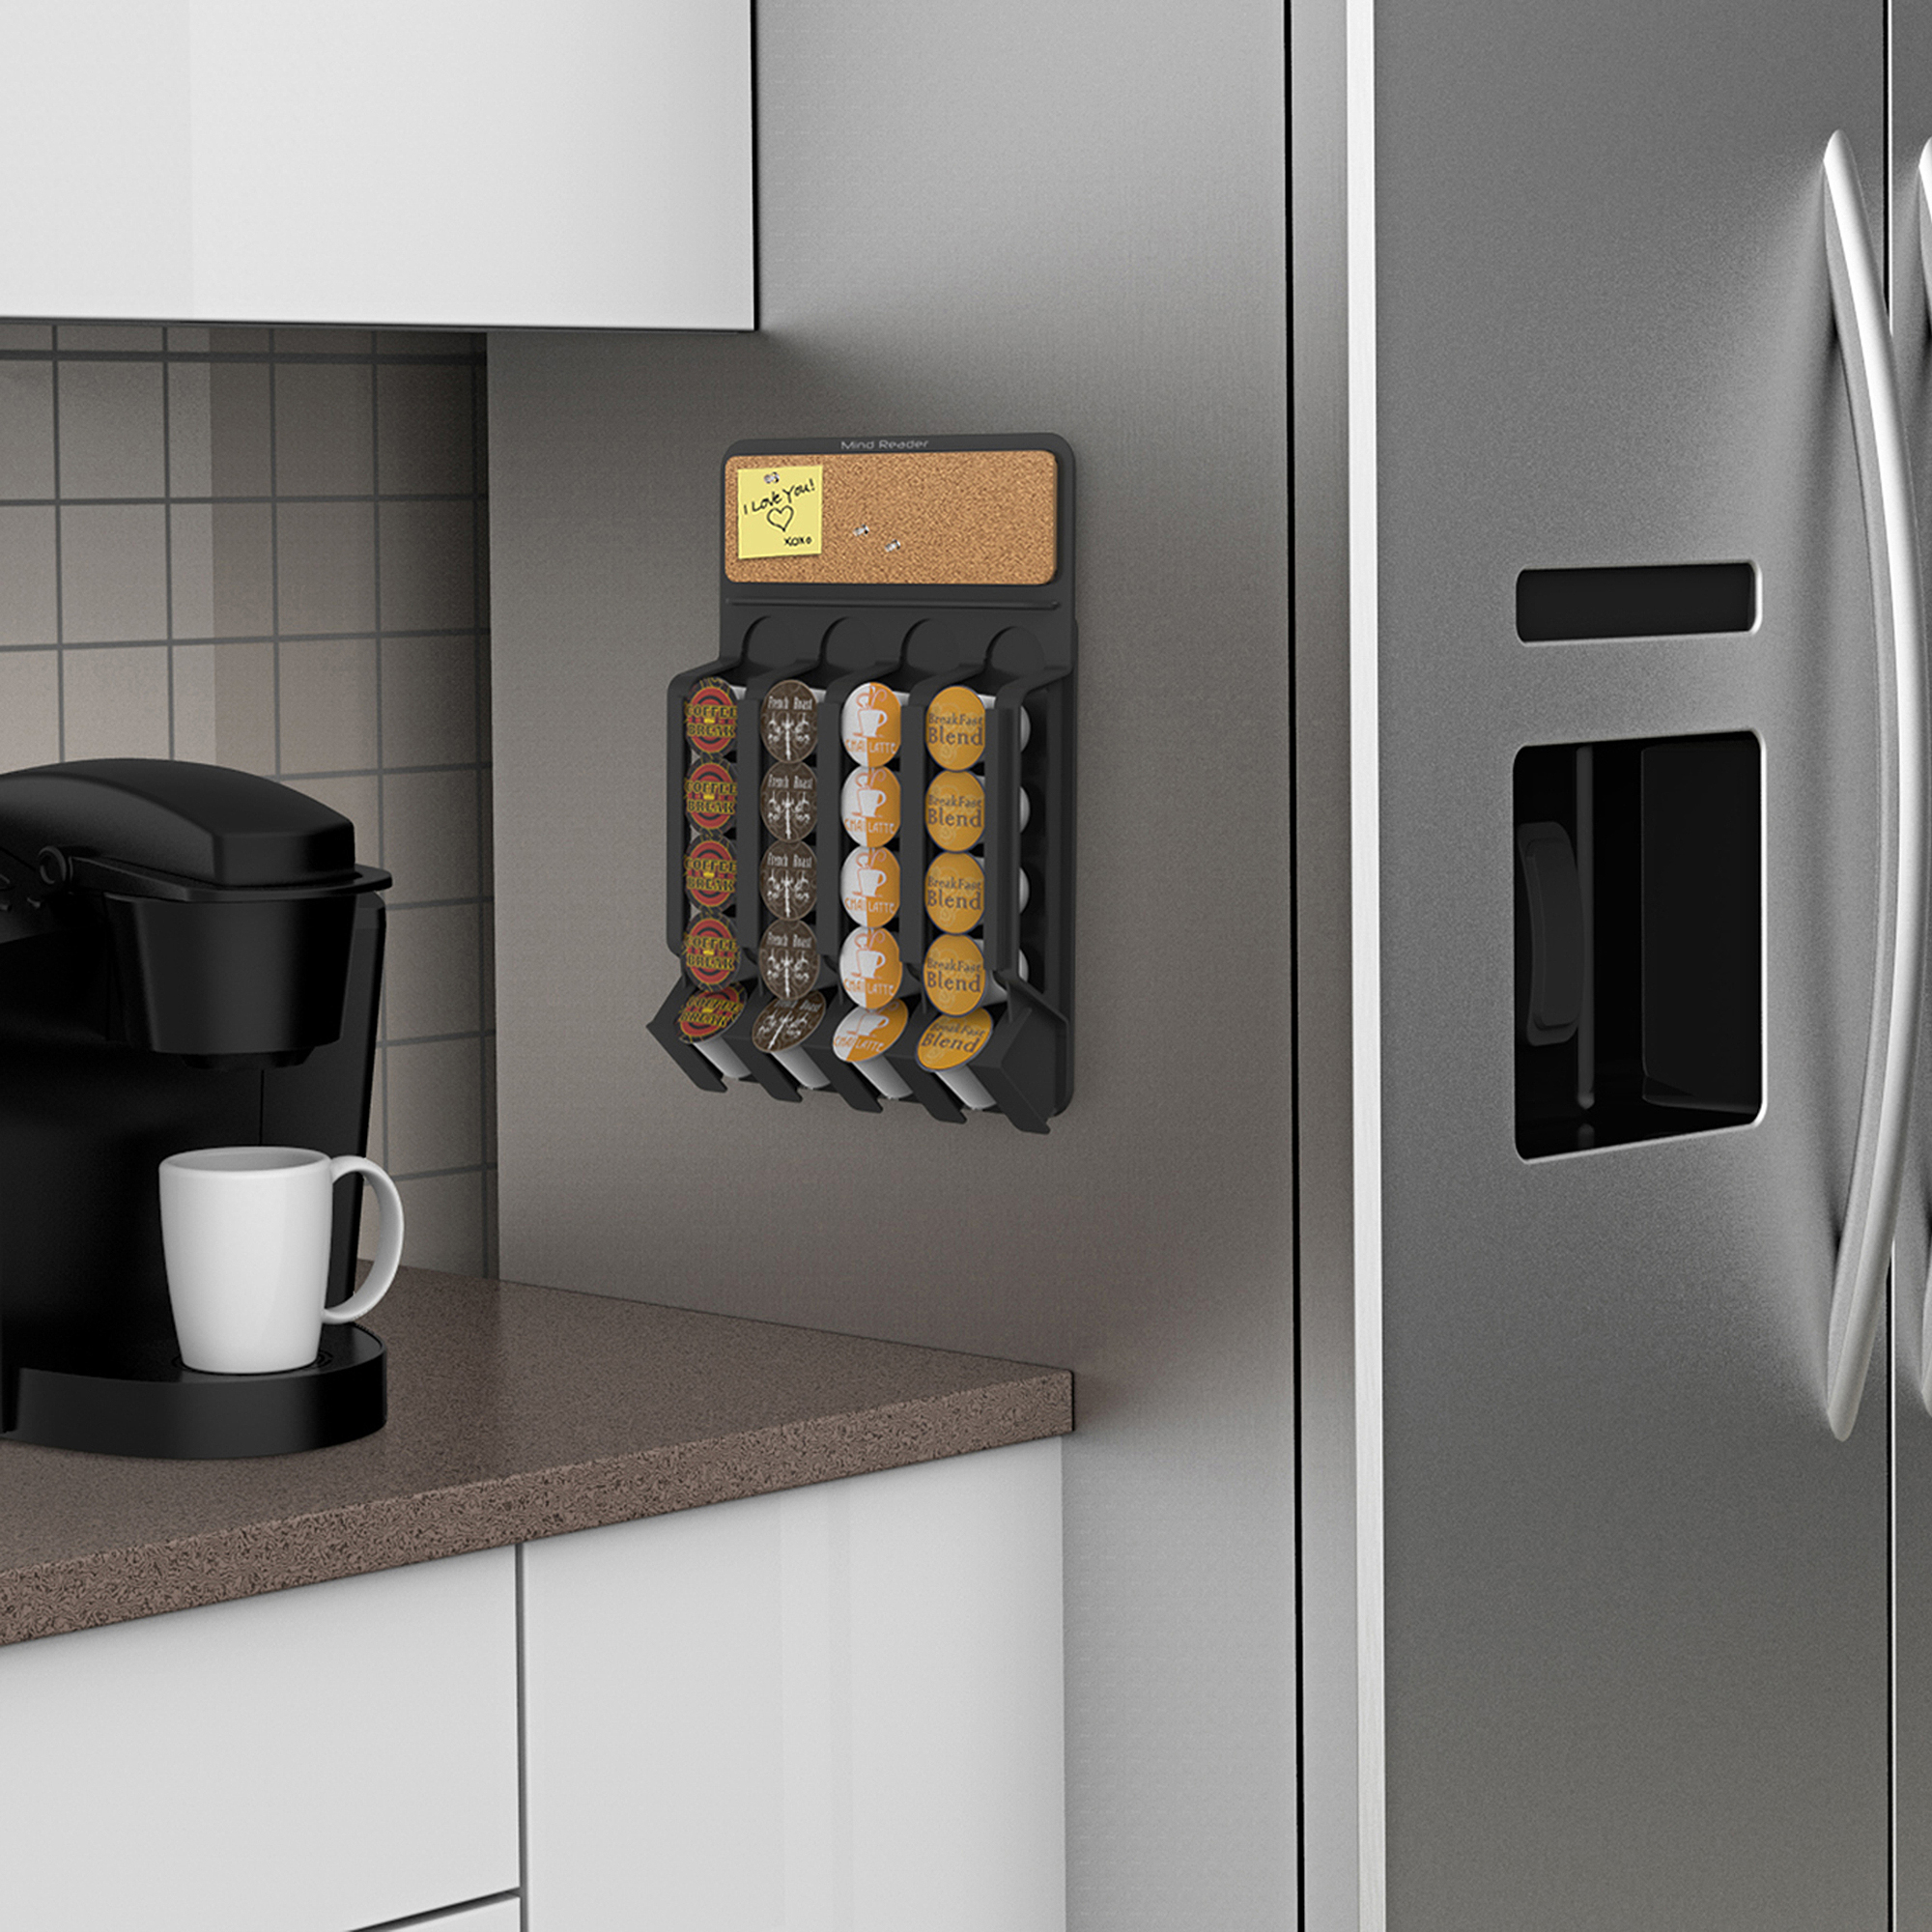 Mind Reader Fridge Wall Mount Coffee Pod K Cup Dispenser With Cork Top